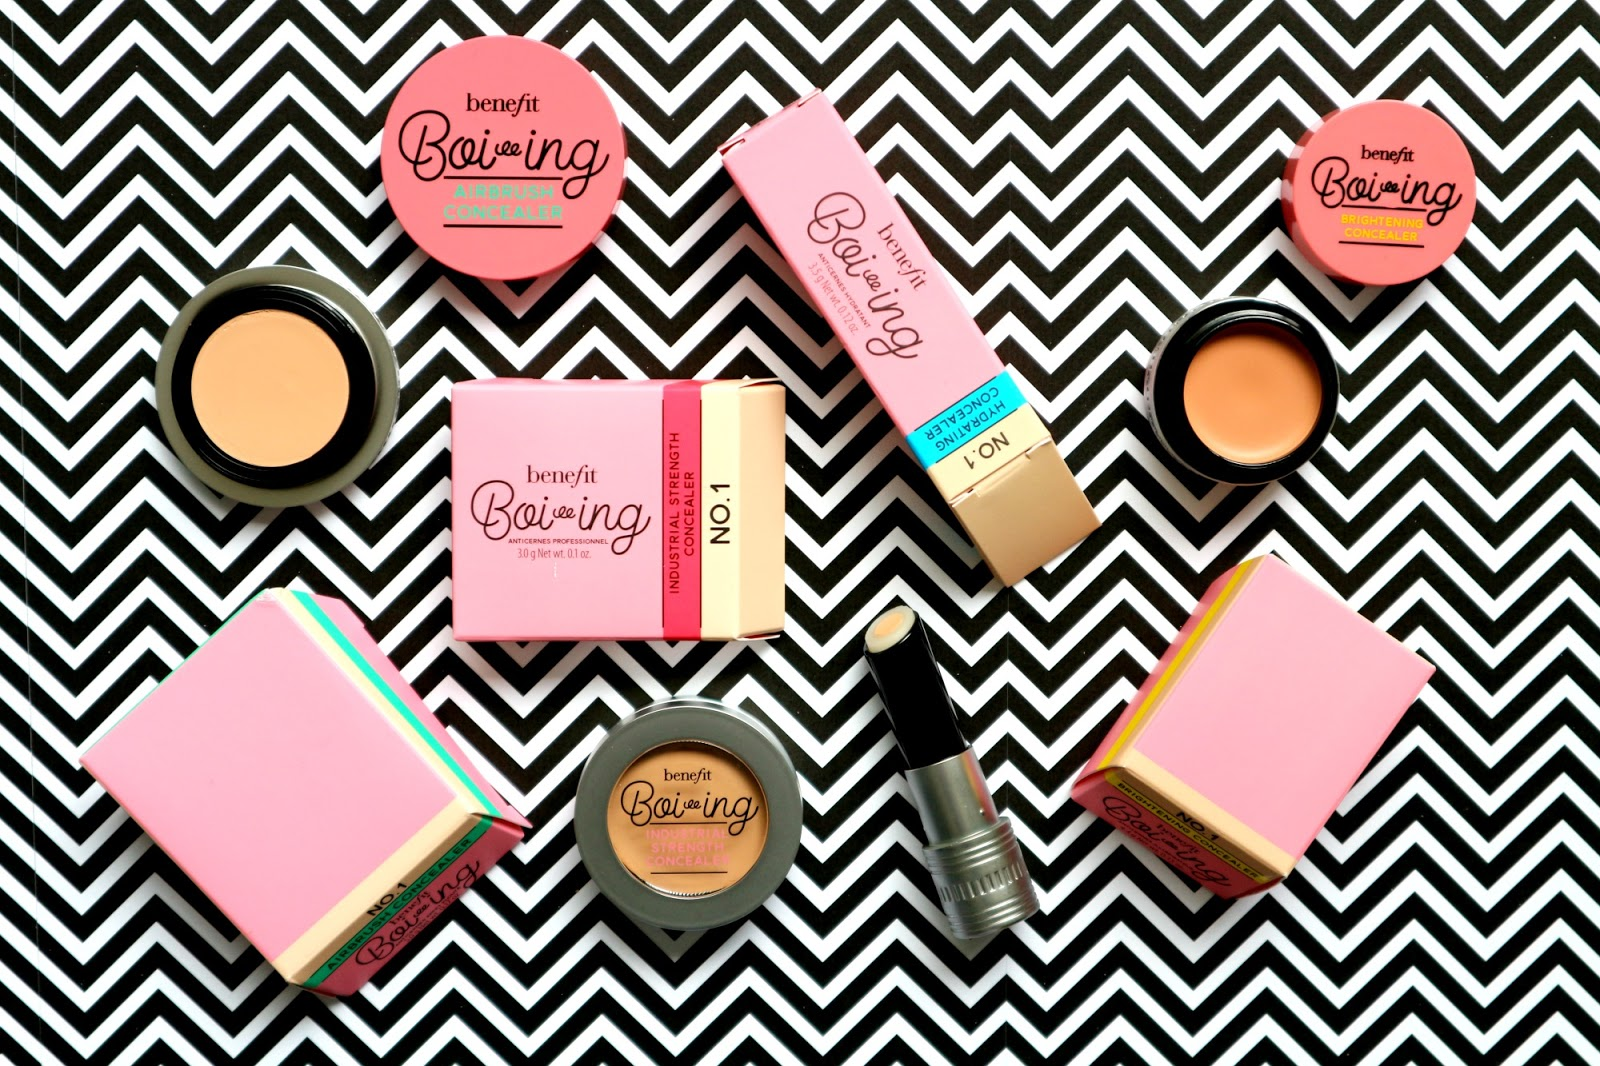 Benefit Boi-ing Concealer Collection Review